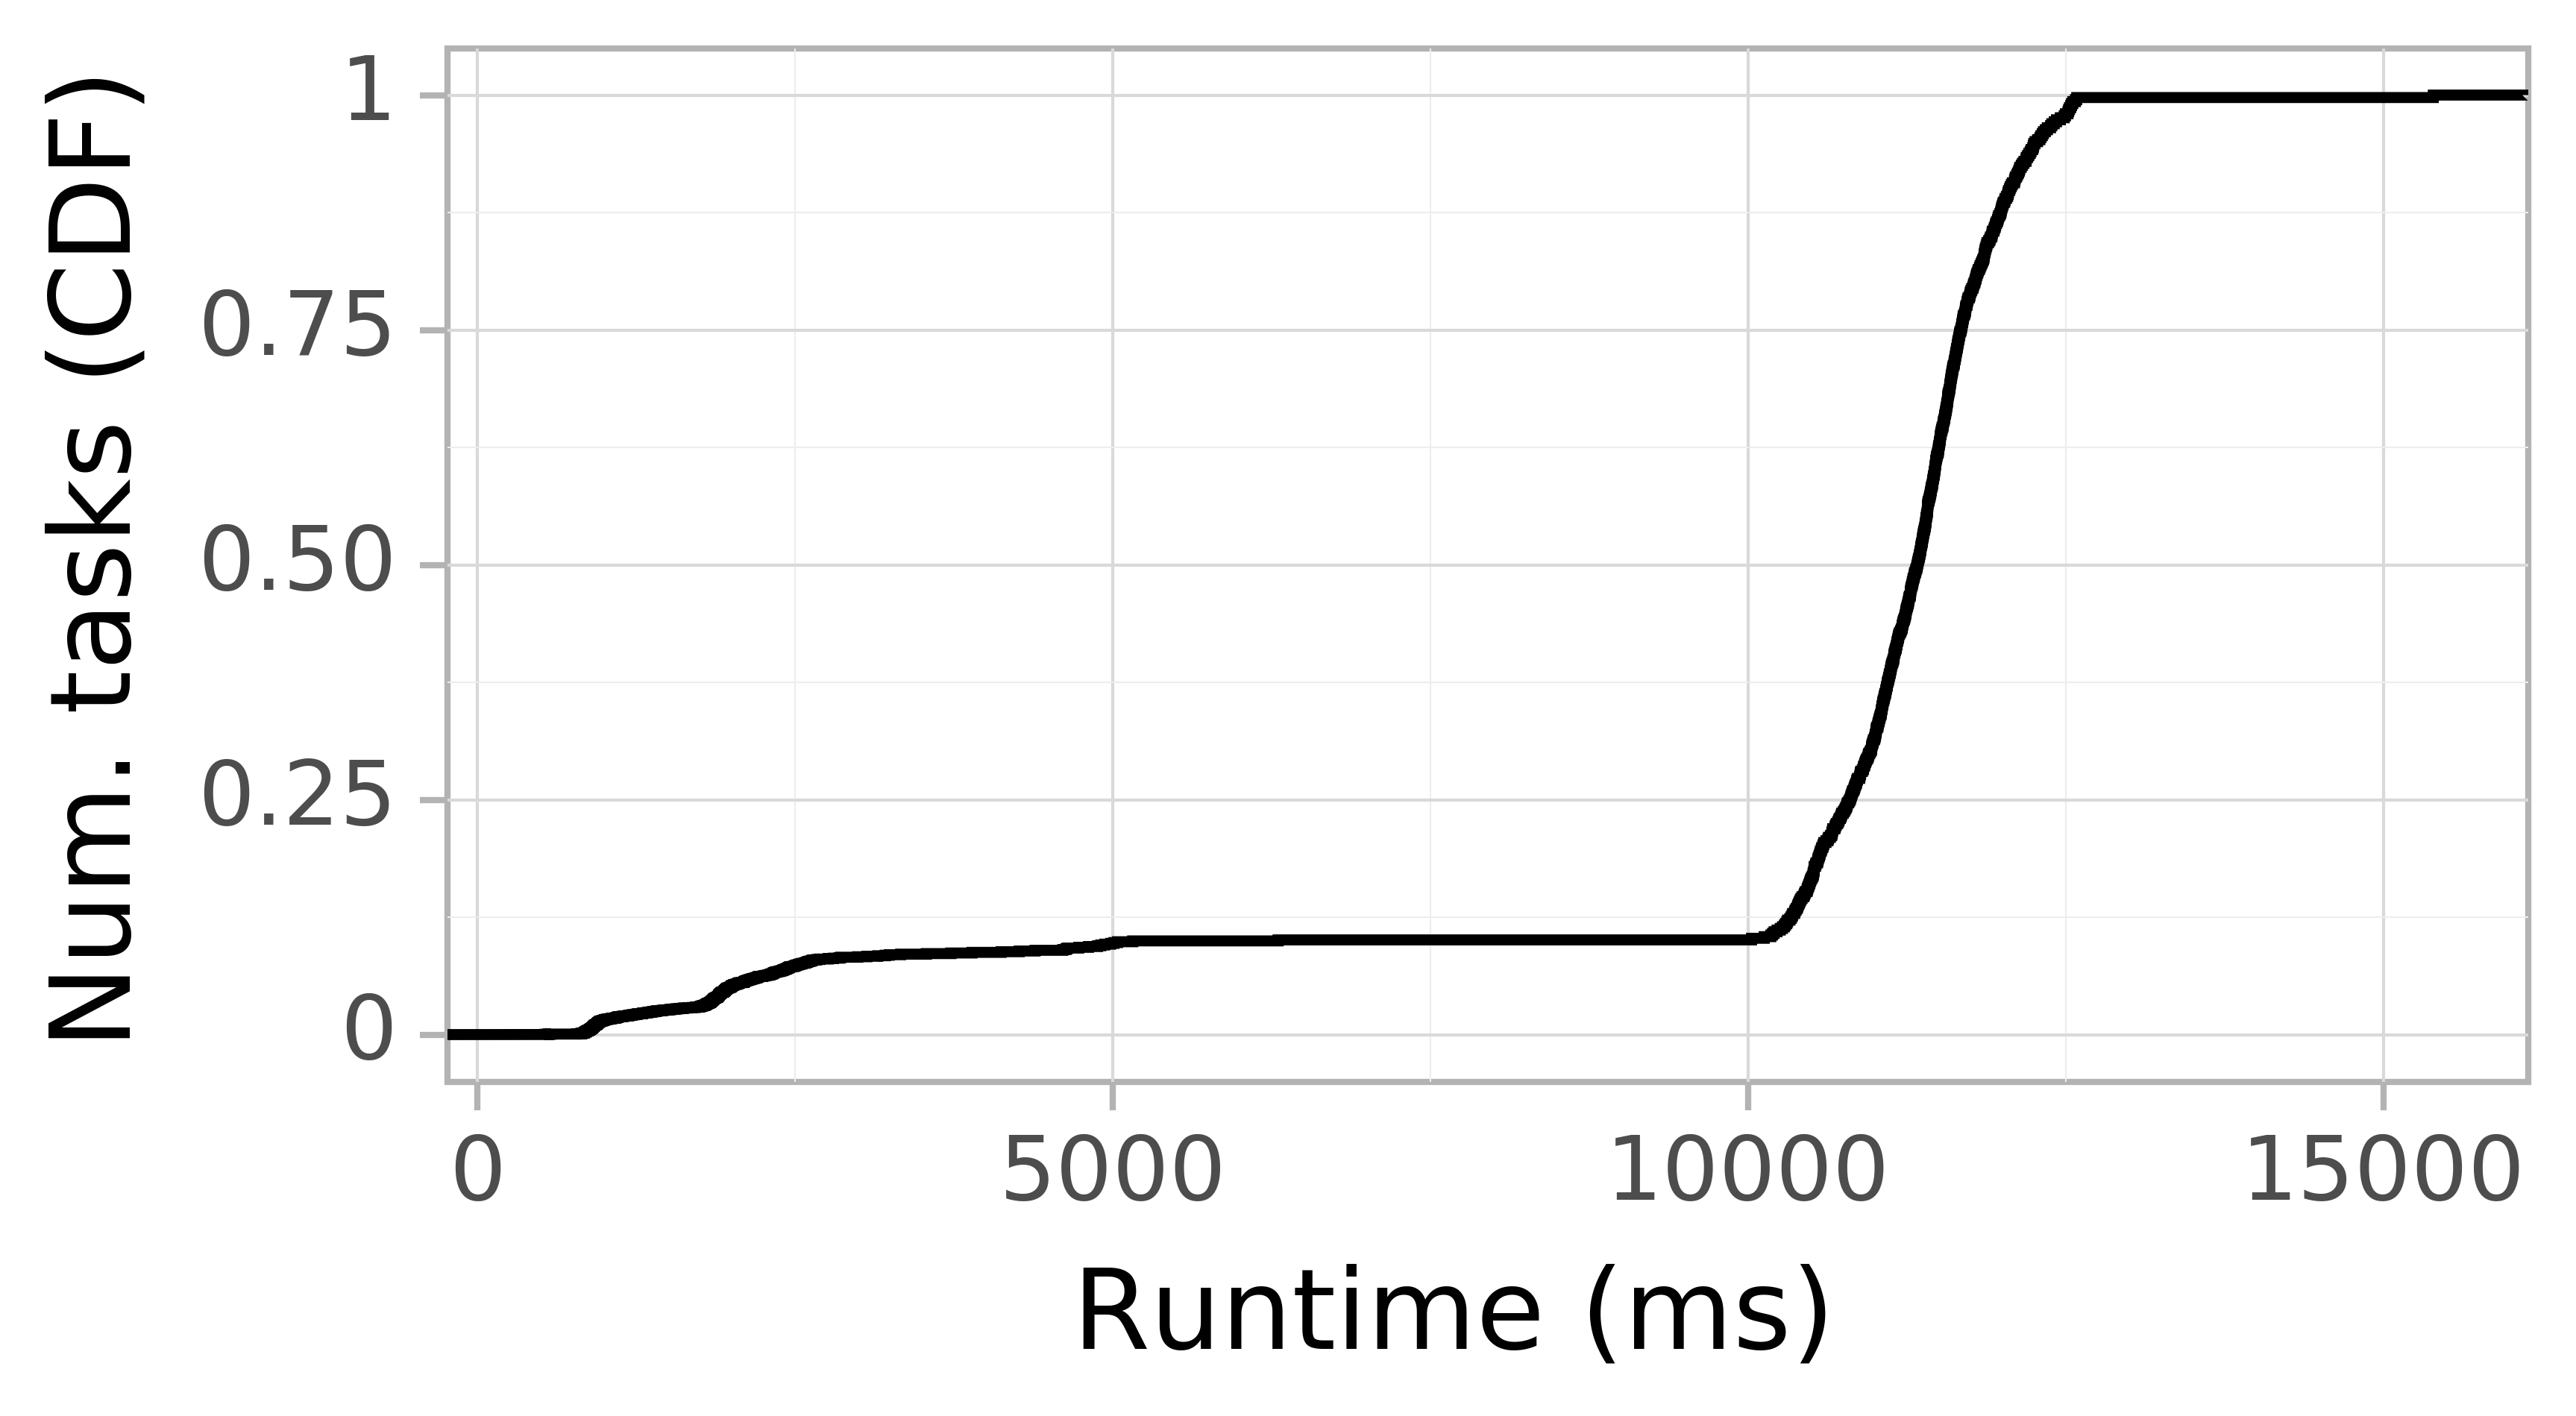 Task runtime CDF graph for the askalon-new_ee52 trace.